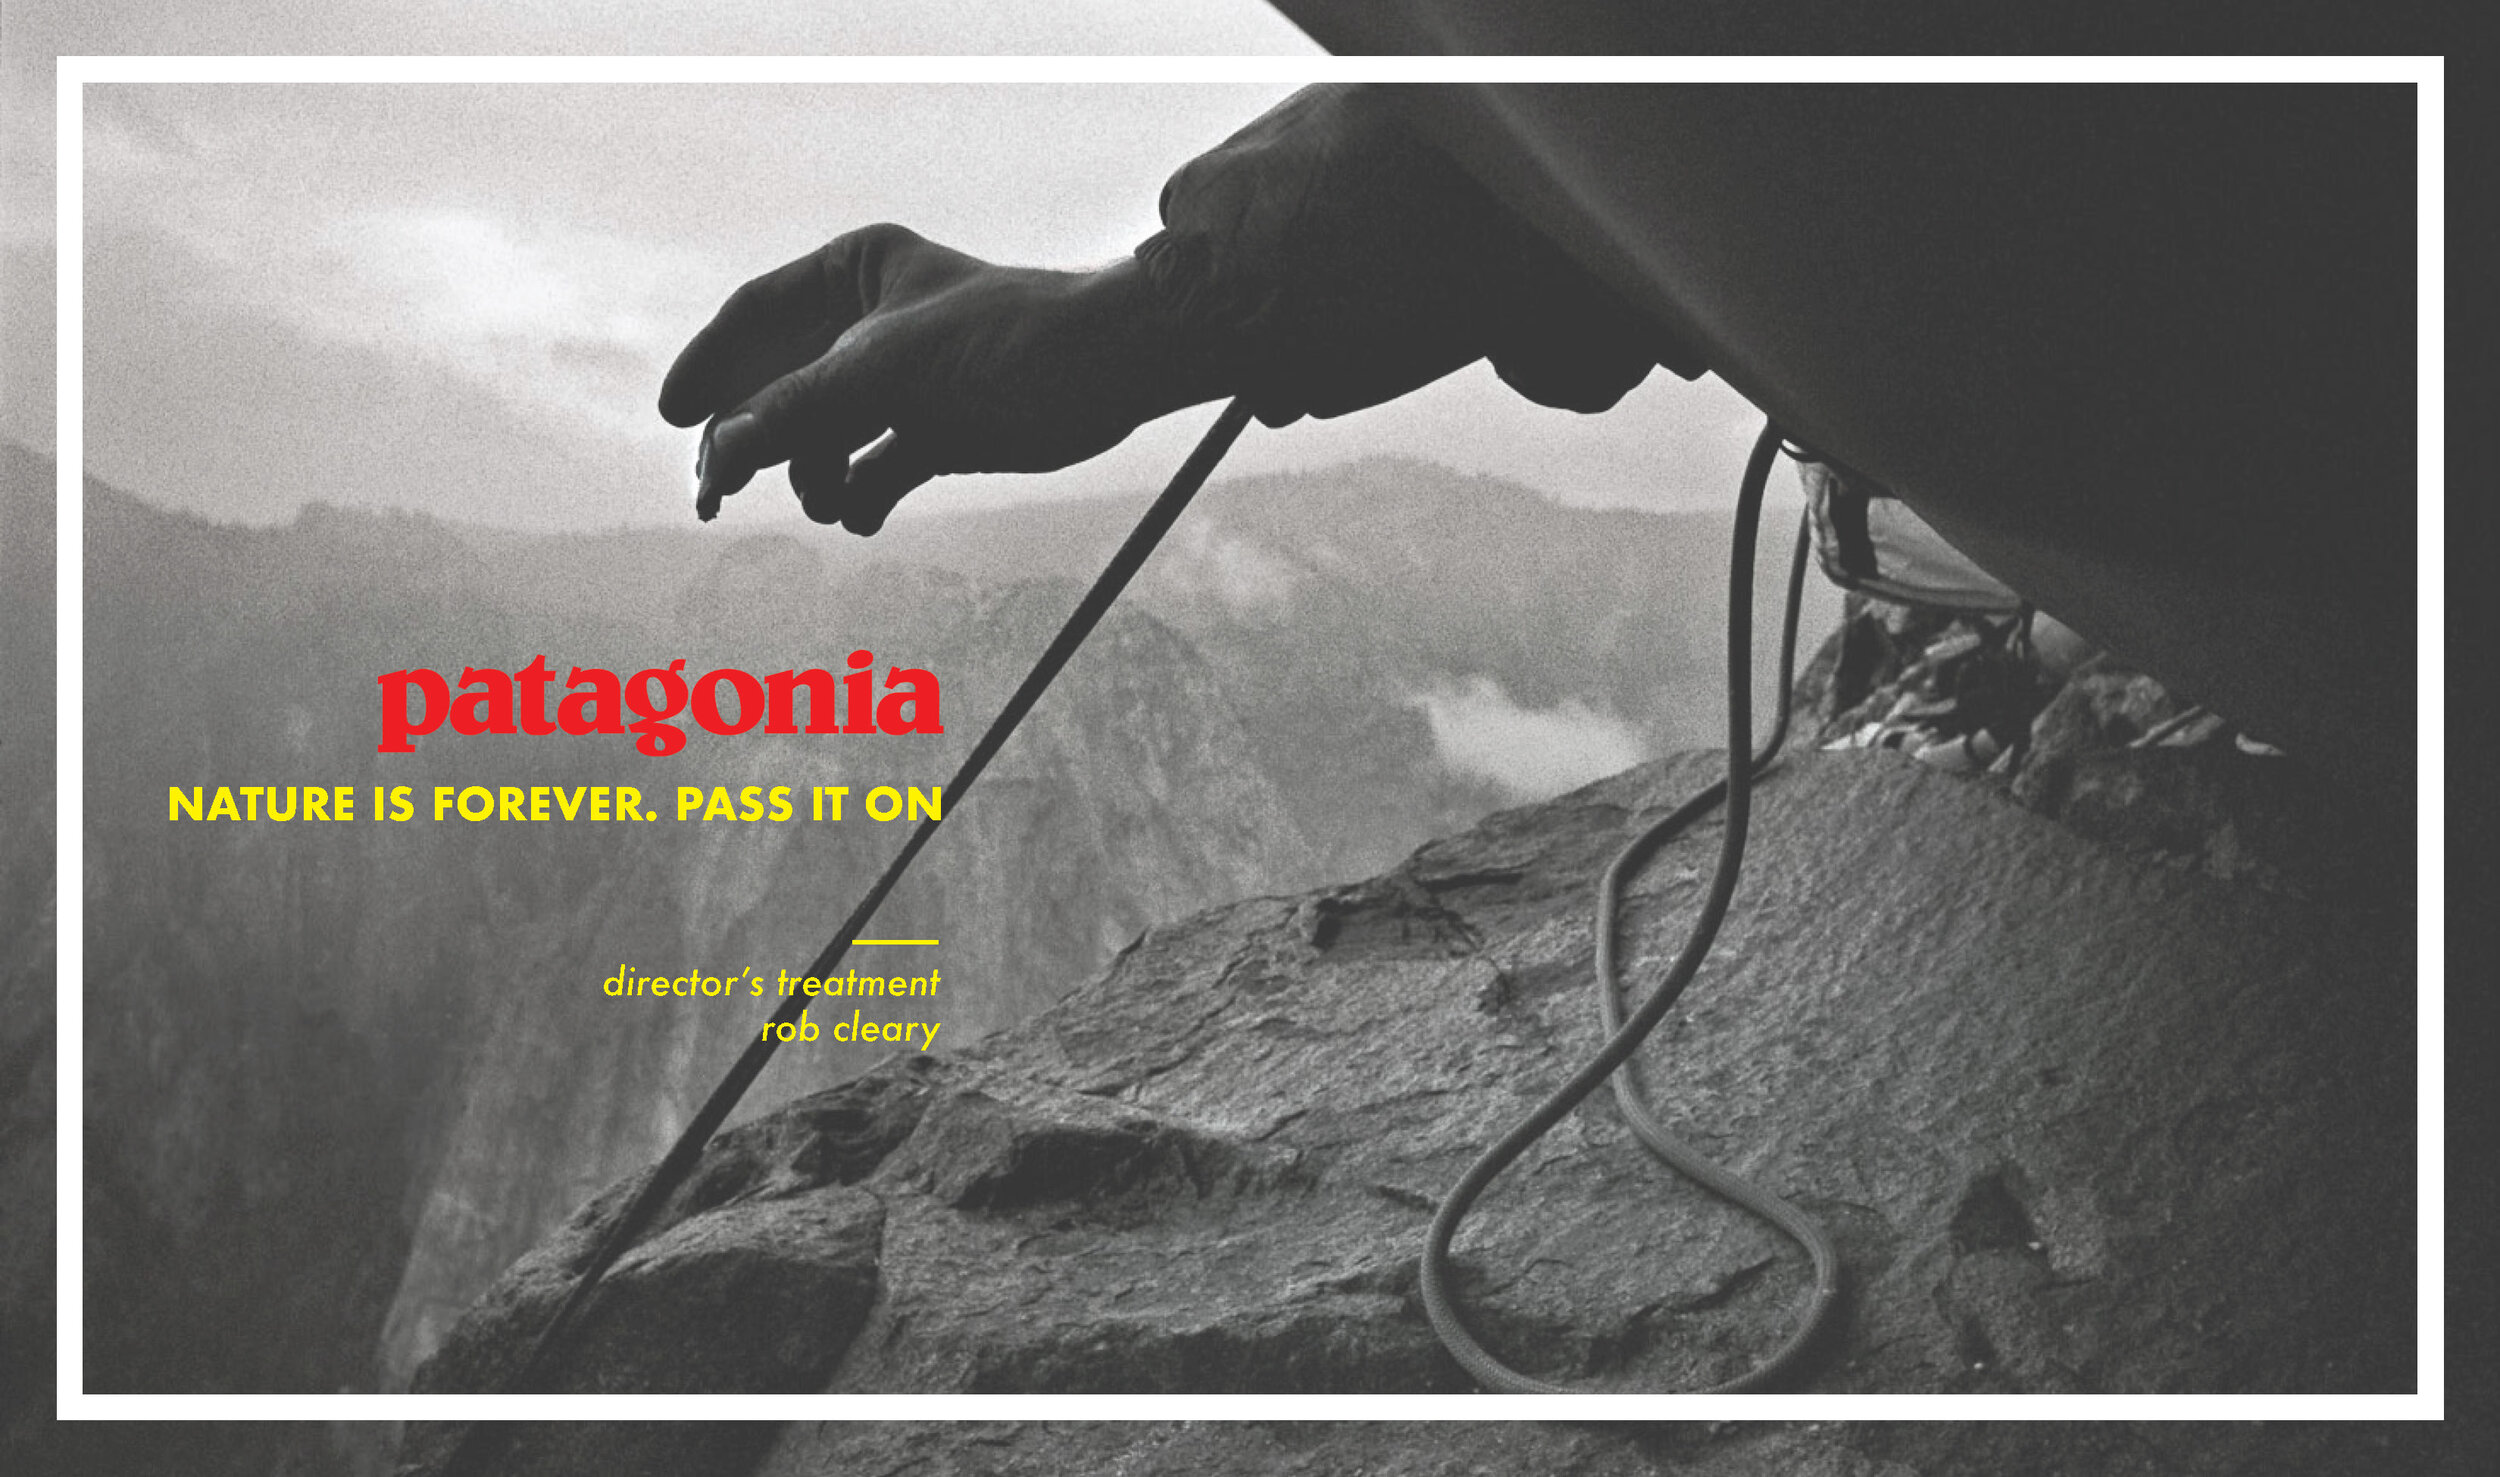 Patagonia_DirectorsTreatment_Page_01.jpg